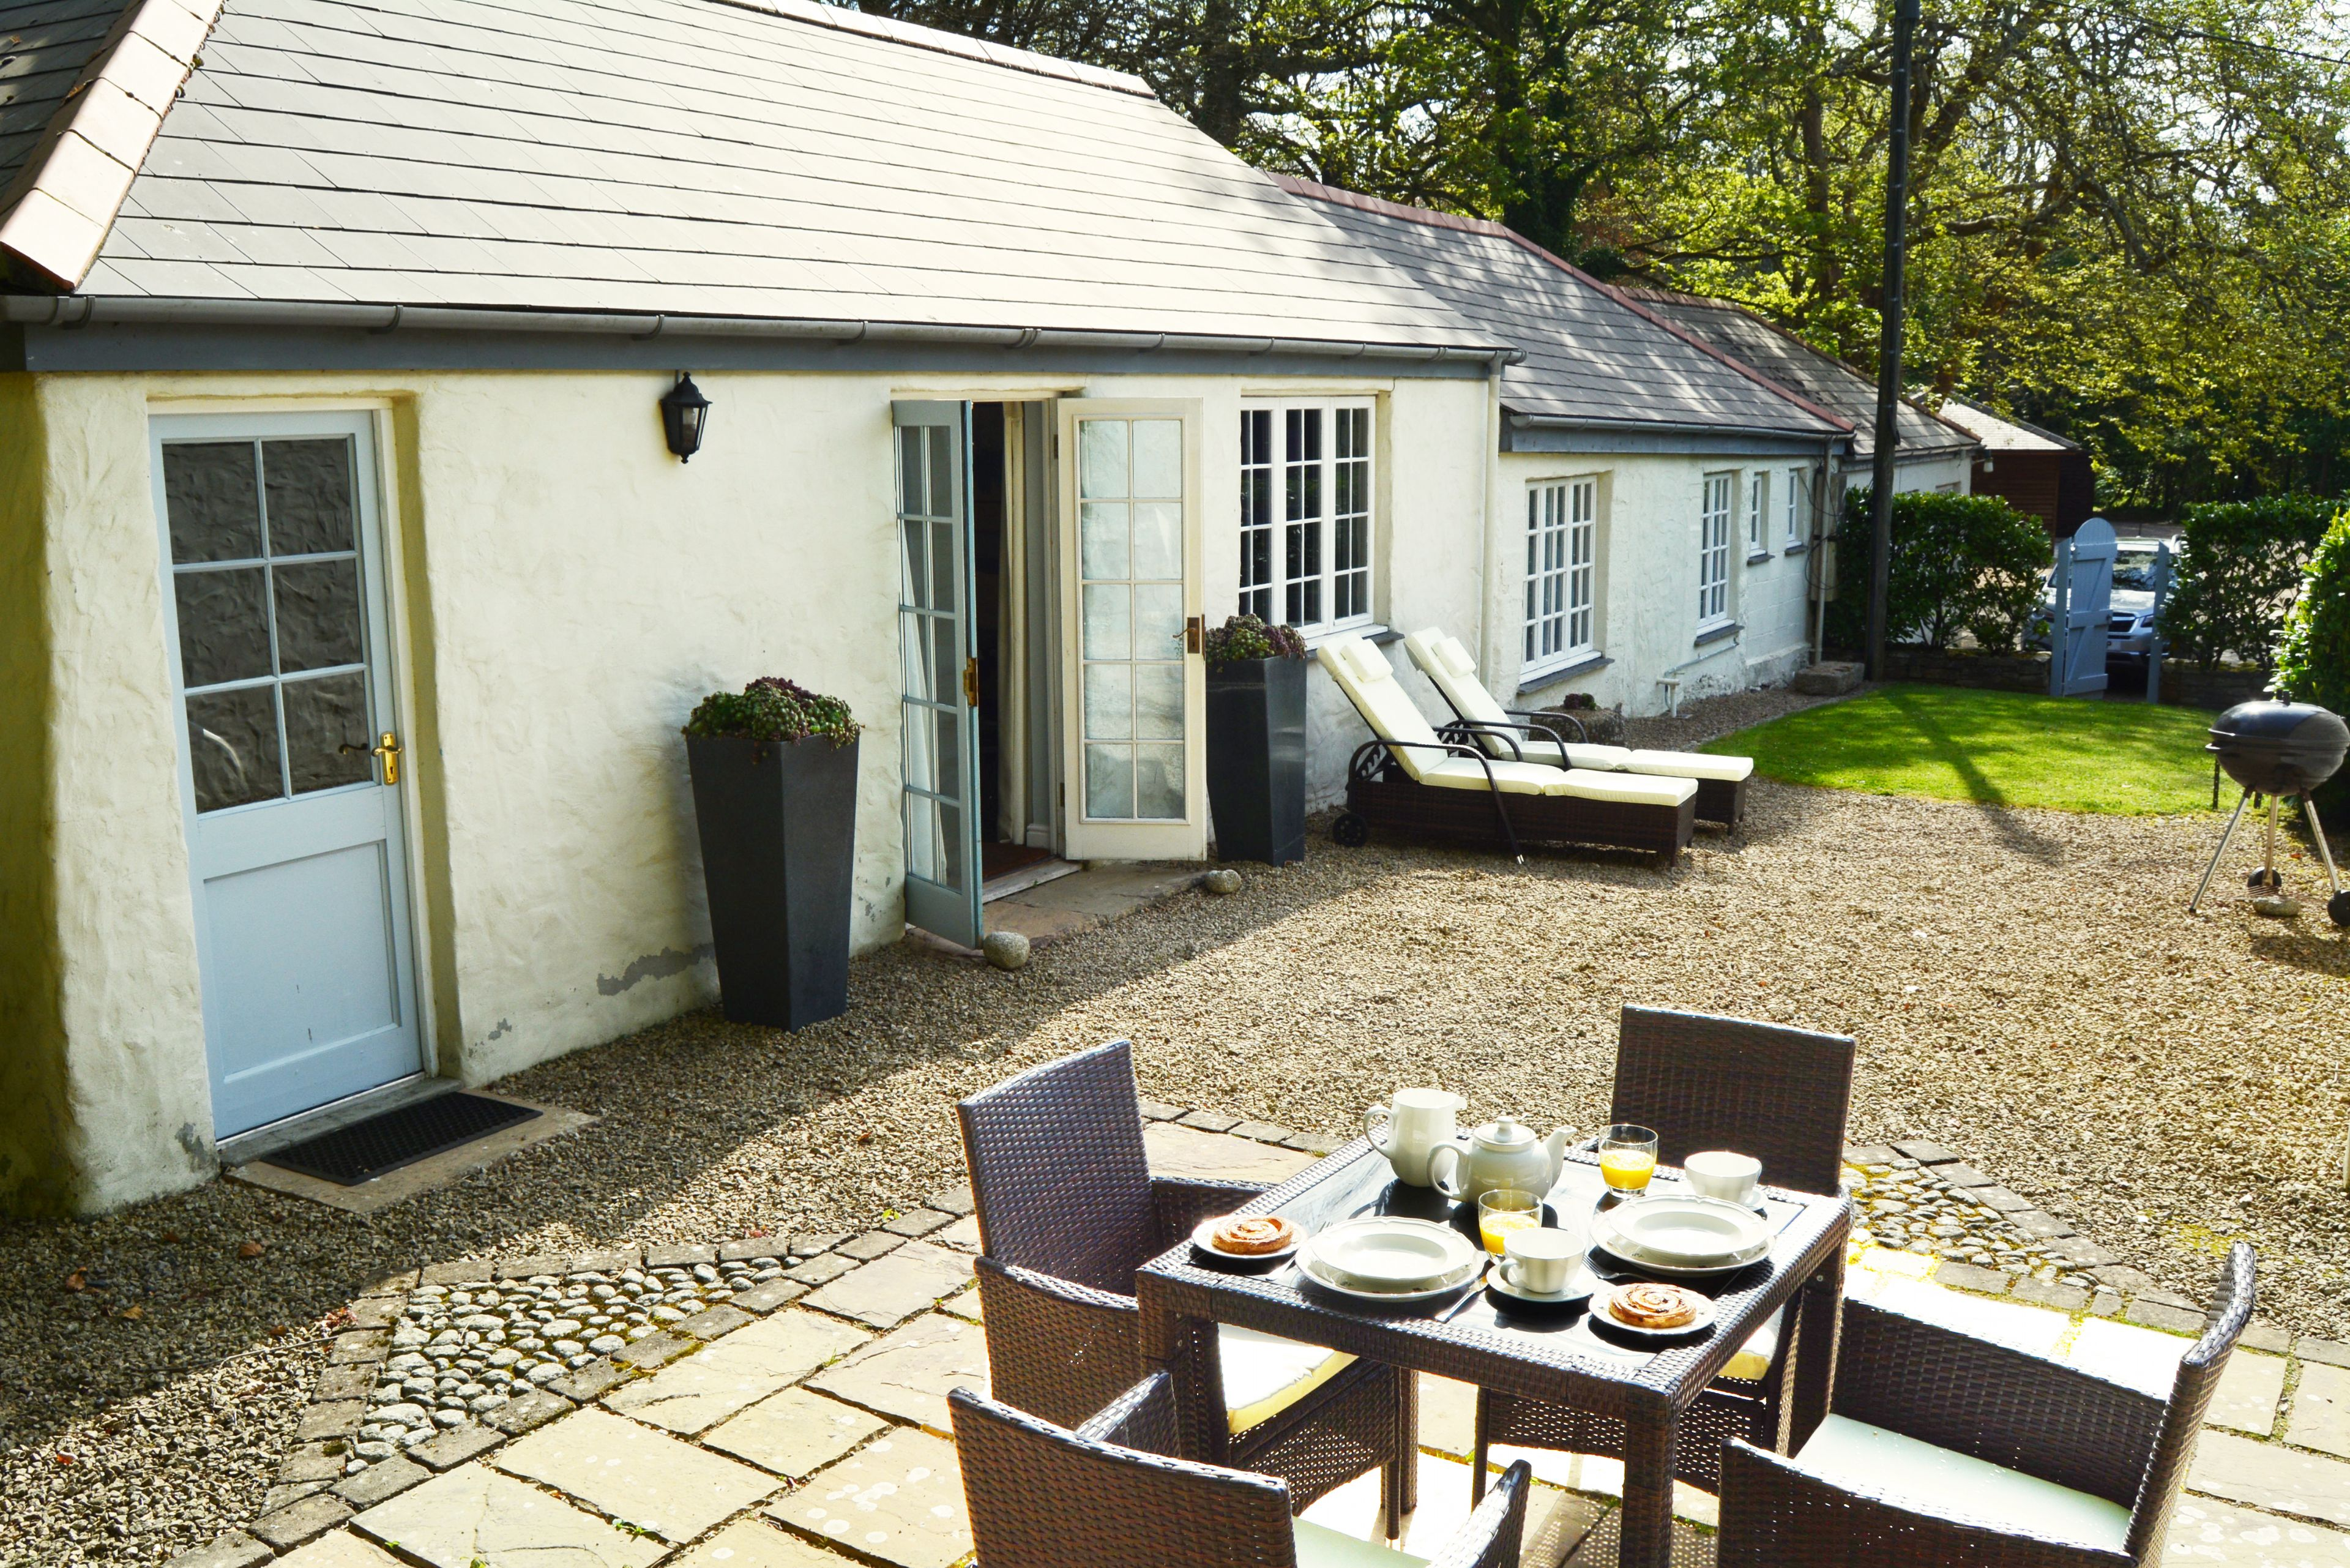 Private patio courtyard with sun loungers, garden furniture and barbecue